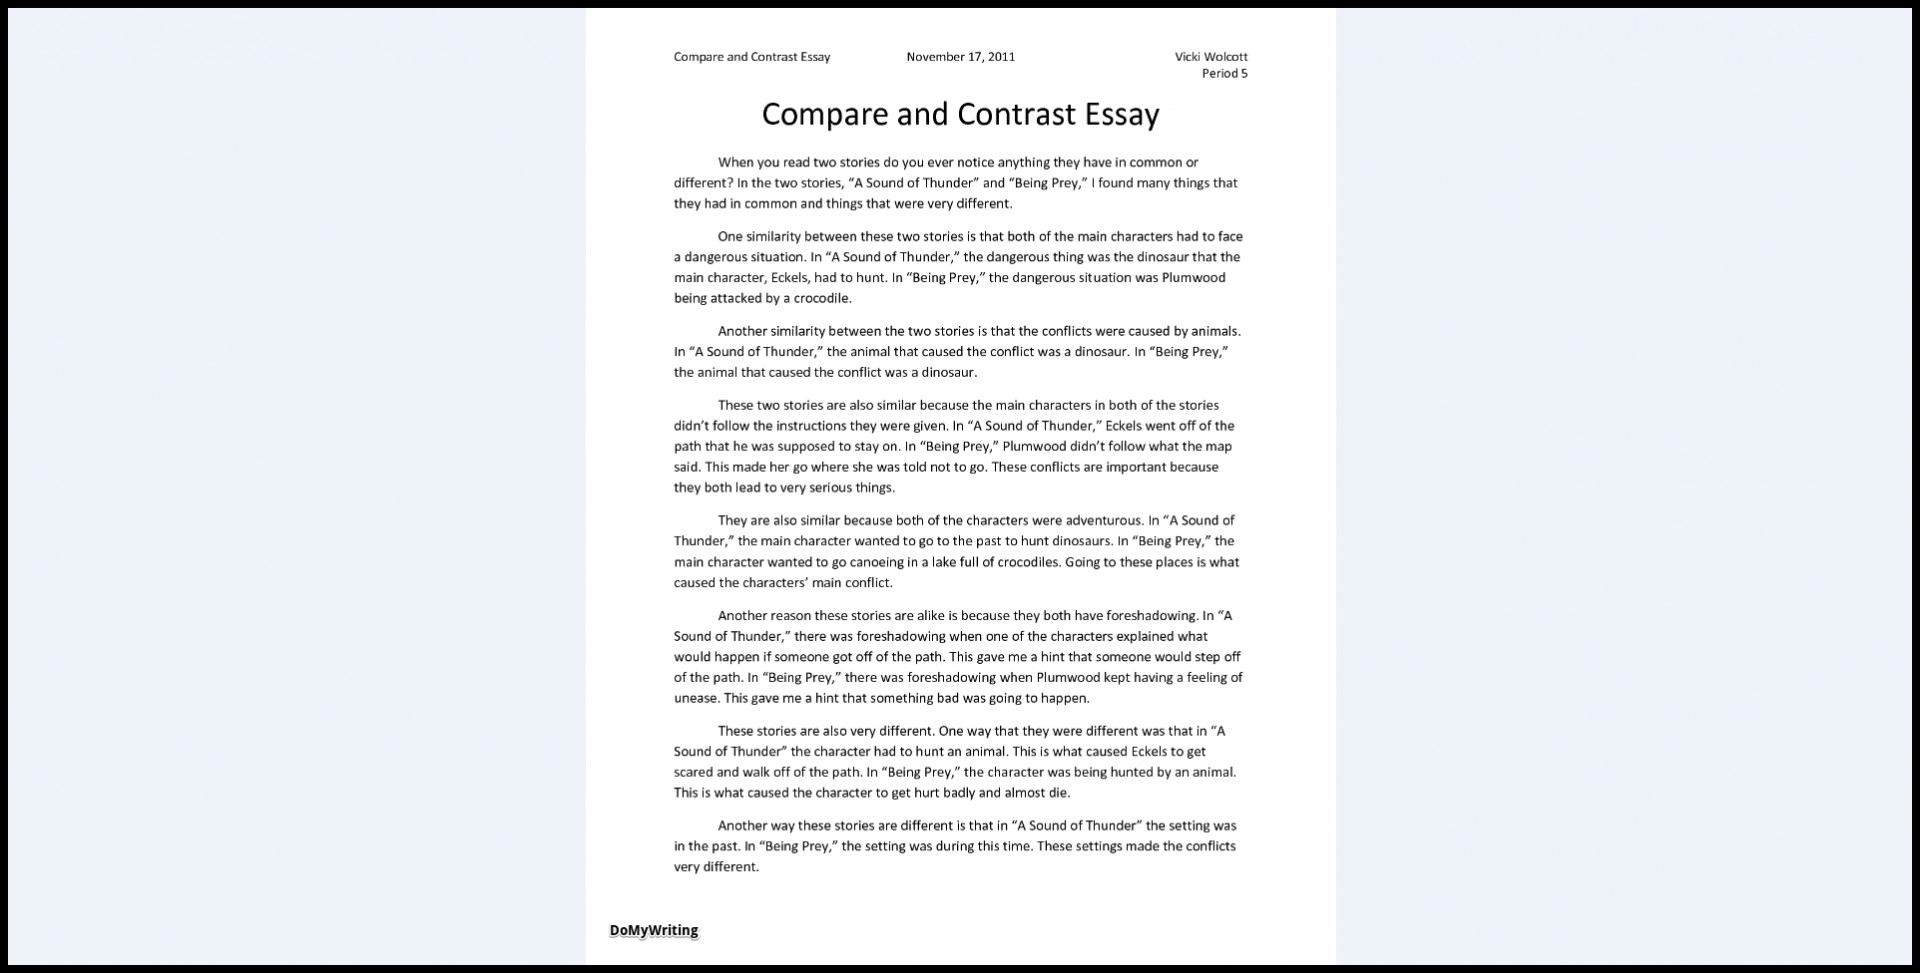 012 Compare And Contrast Essays Sample Archaicawful Essay Pdf High School College For 5th Grade 1920